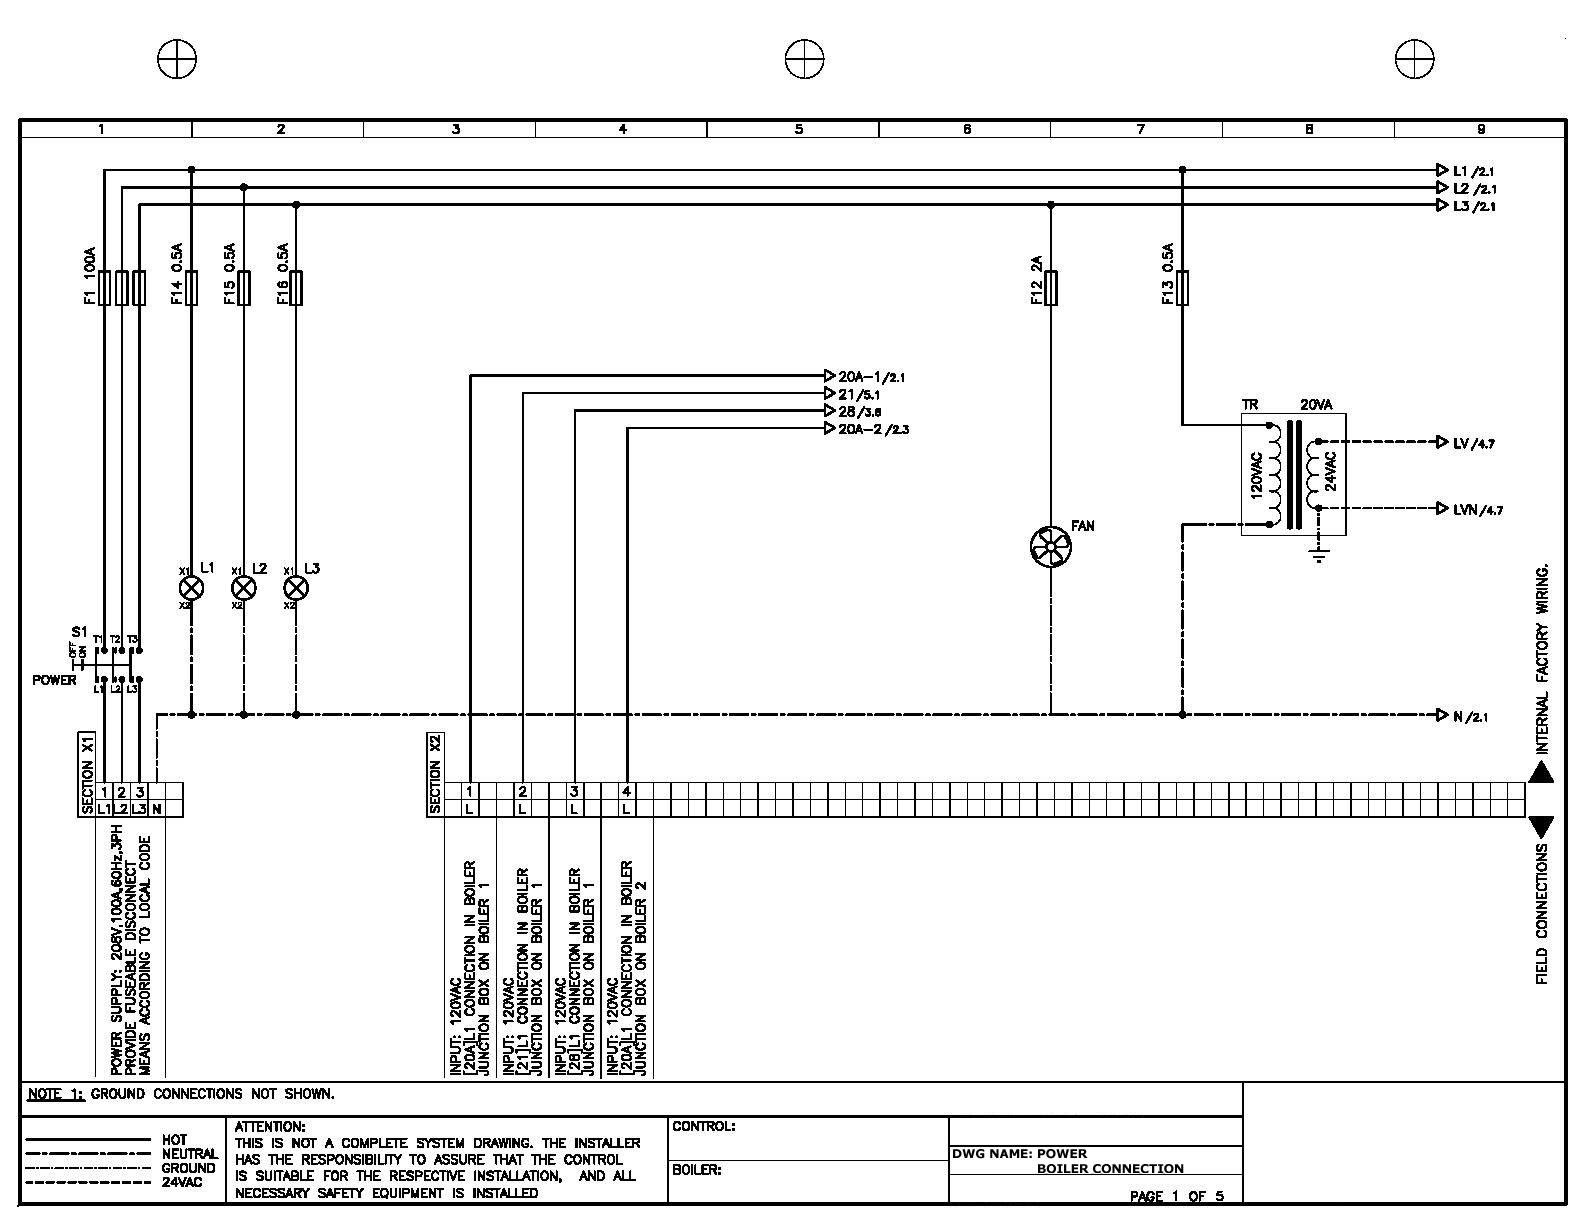 Panel Schematics Kwe Technologies Group Wiring Diagram Symbols Dwg Sample Schematic